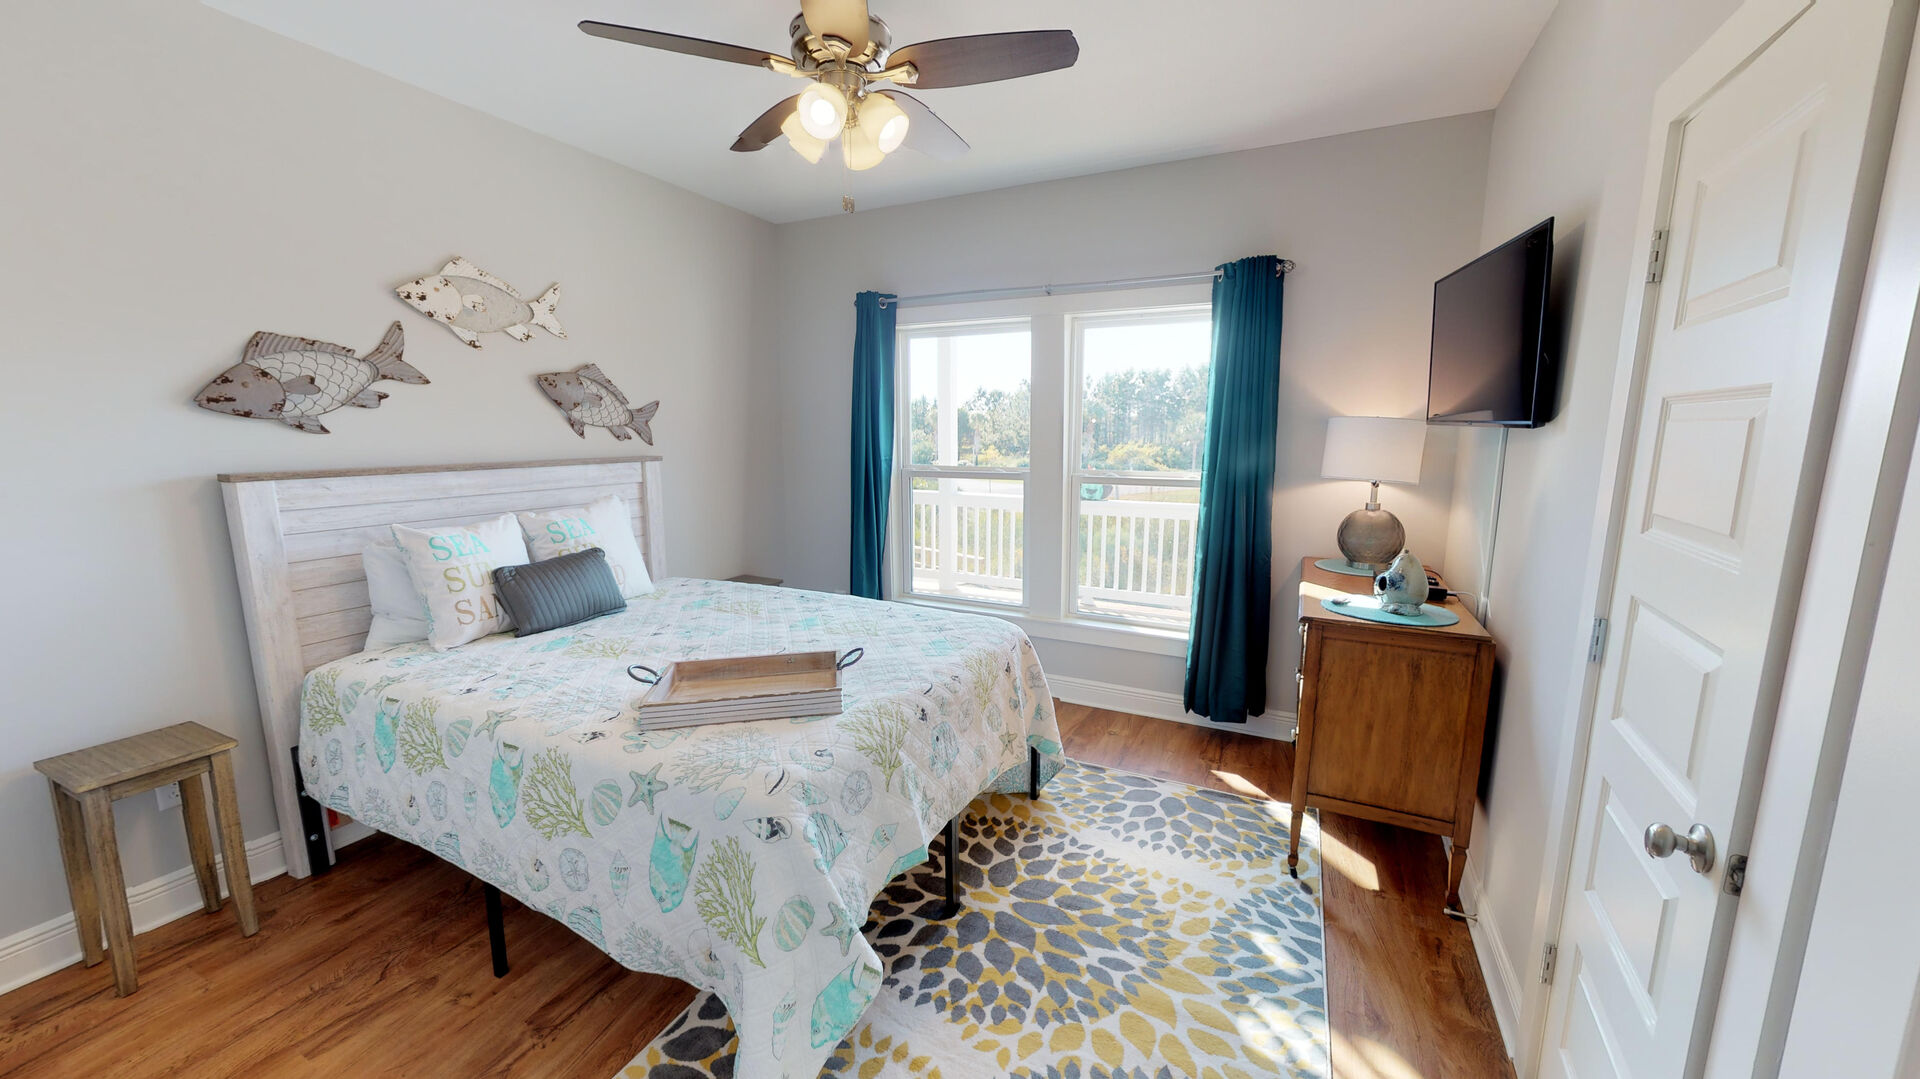 Large Bed, Buffet Console, TV, Windows, and Ceiling Fan.